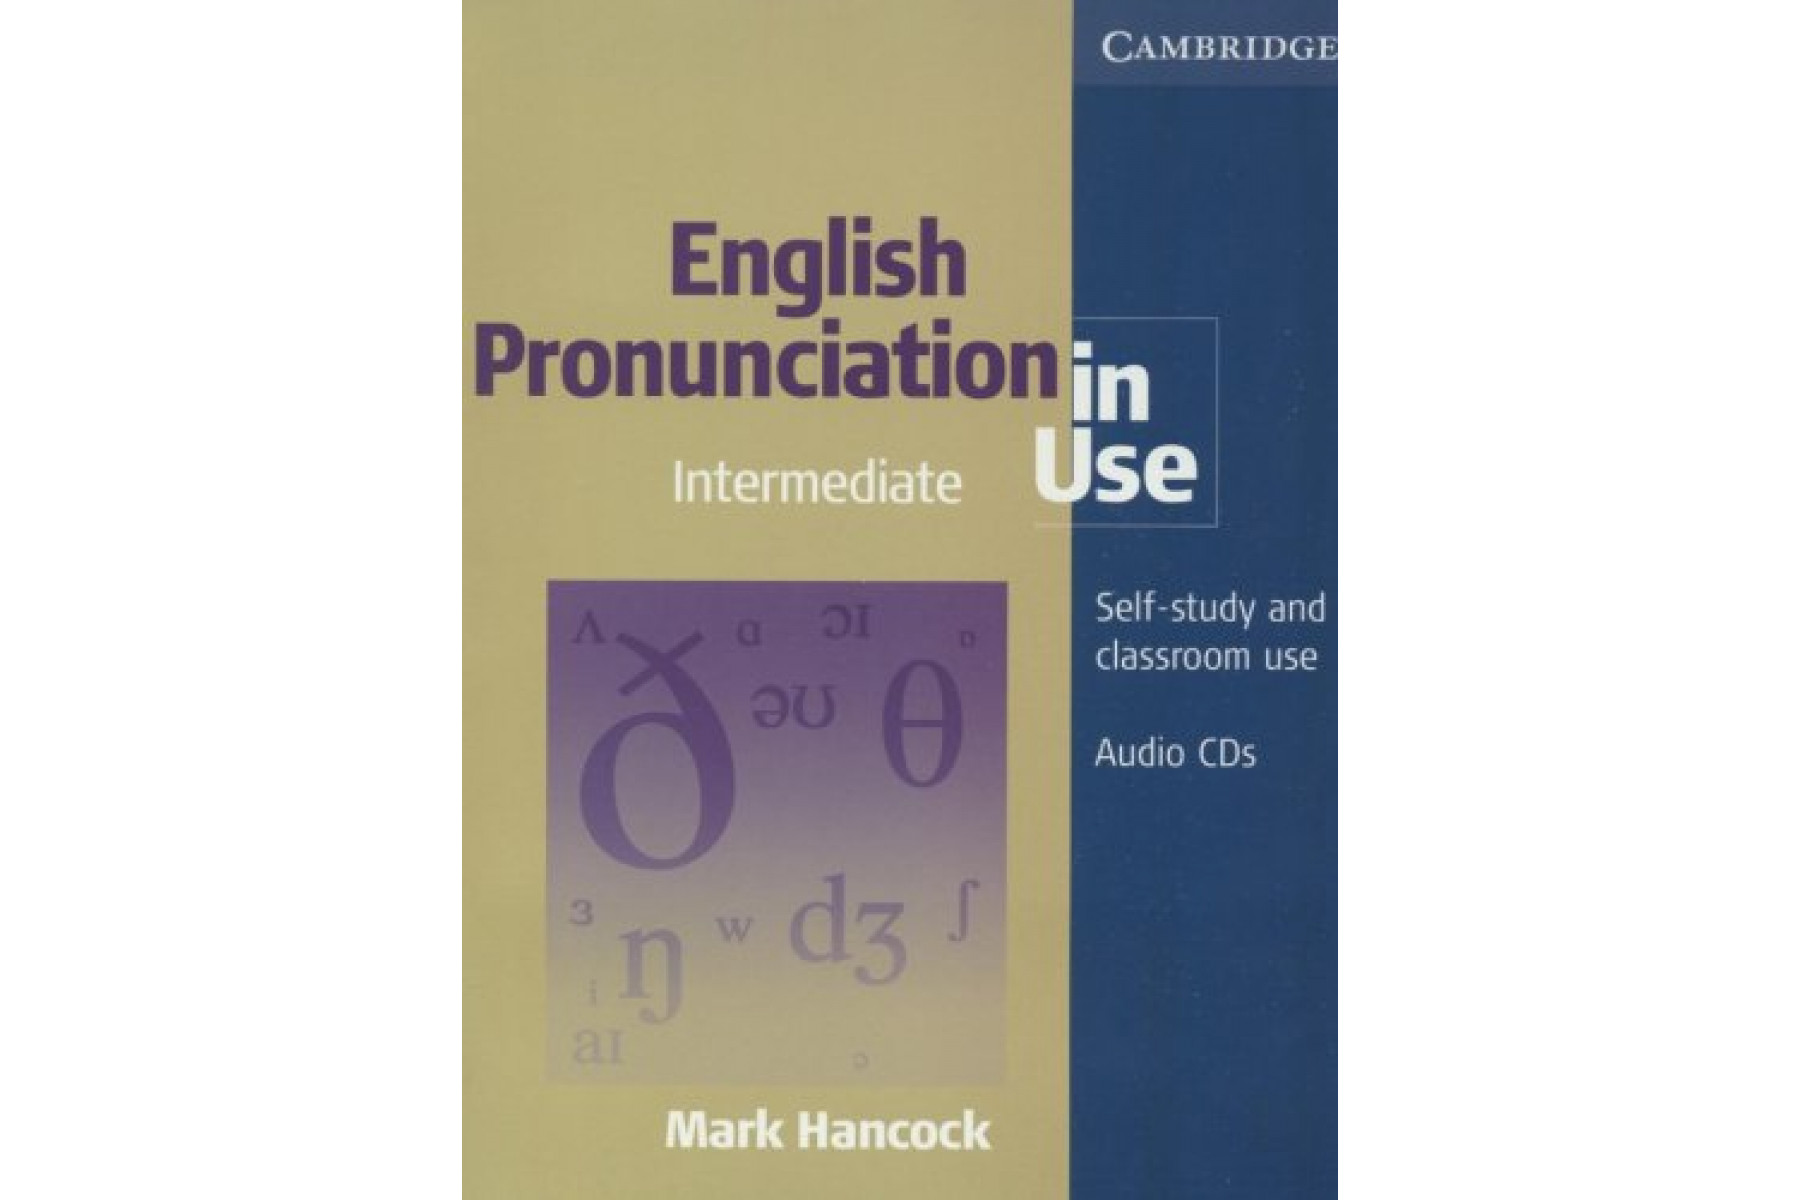 English Pronunciation in Use Intermediate Book + 4 Audio CD Pack